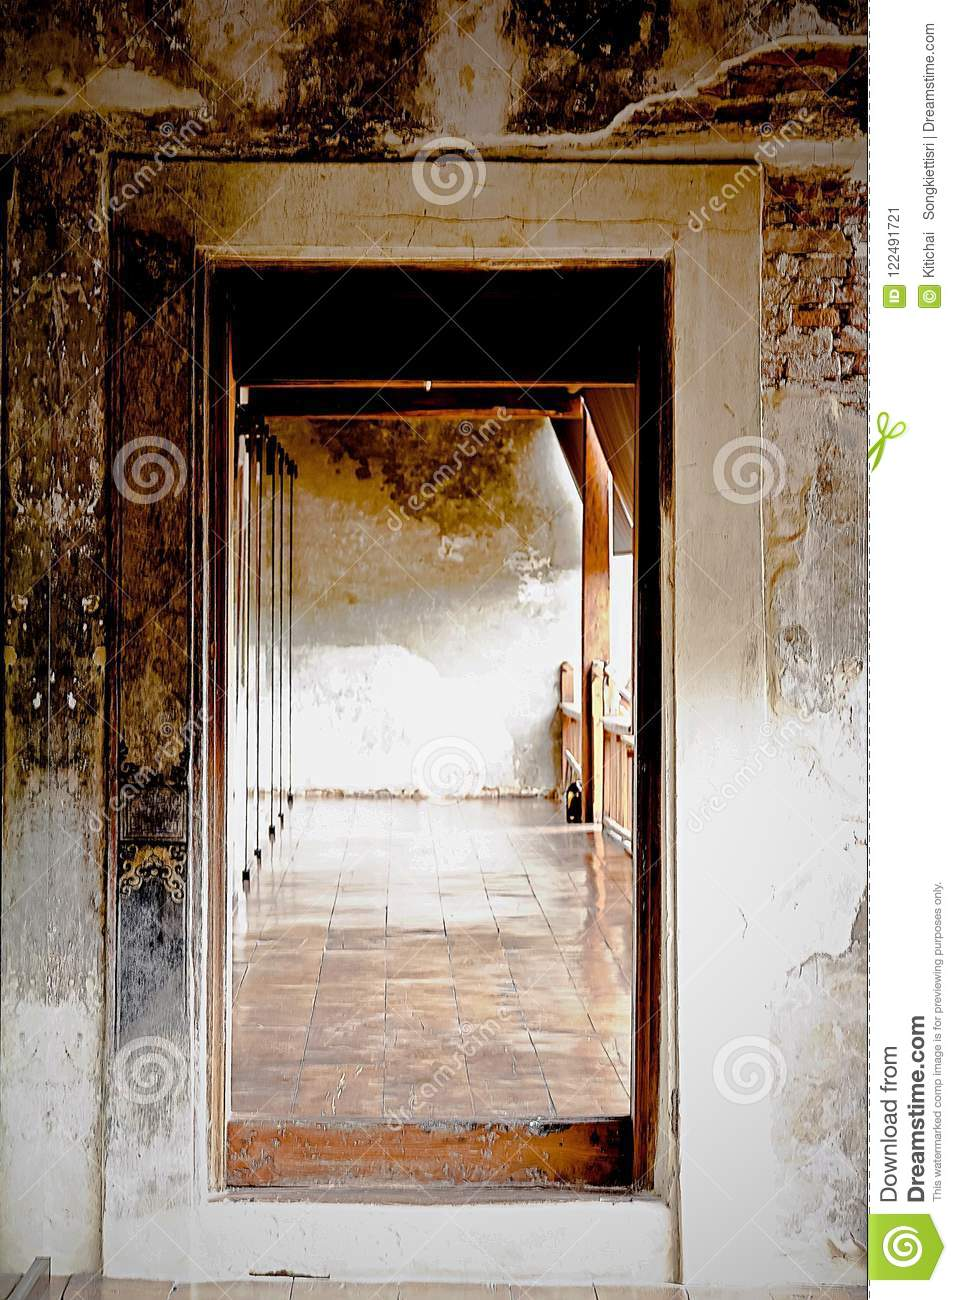 Old Wooden Door Frame In Cement Wall The House Interior Vintage Stly